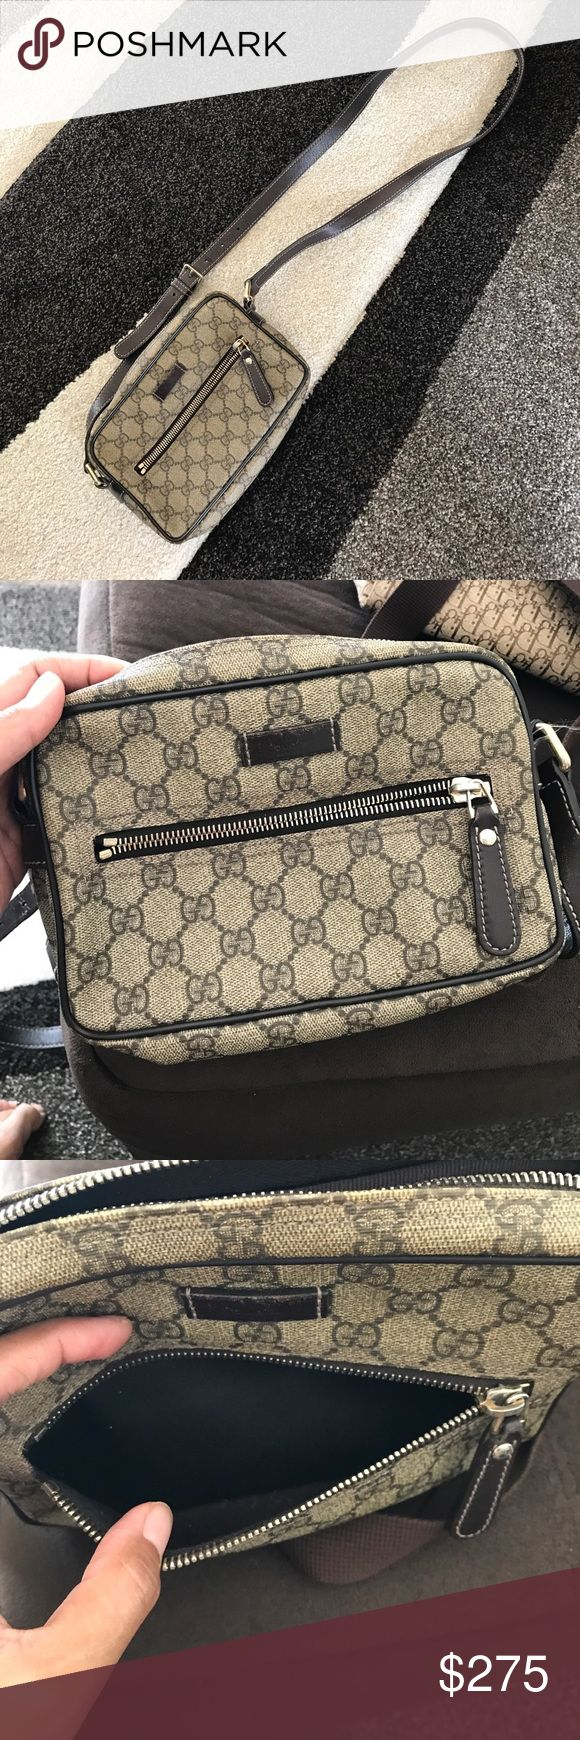 Authentic Gucci Messenger Bag Normal Wear. Good Condition. Authentic. Accepting Offers. Thanks! Gucci Bags Crossbody Bags